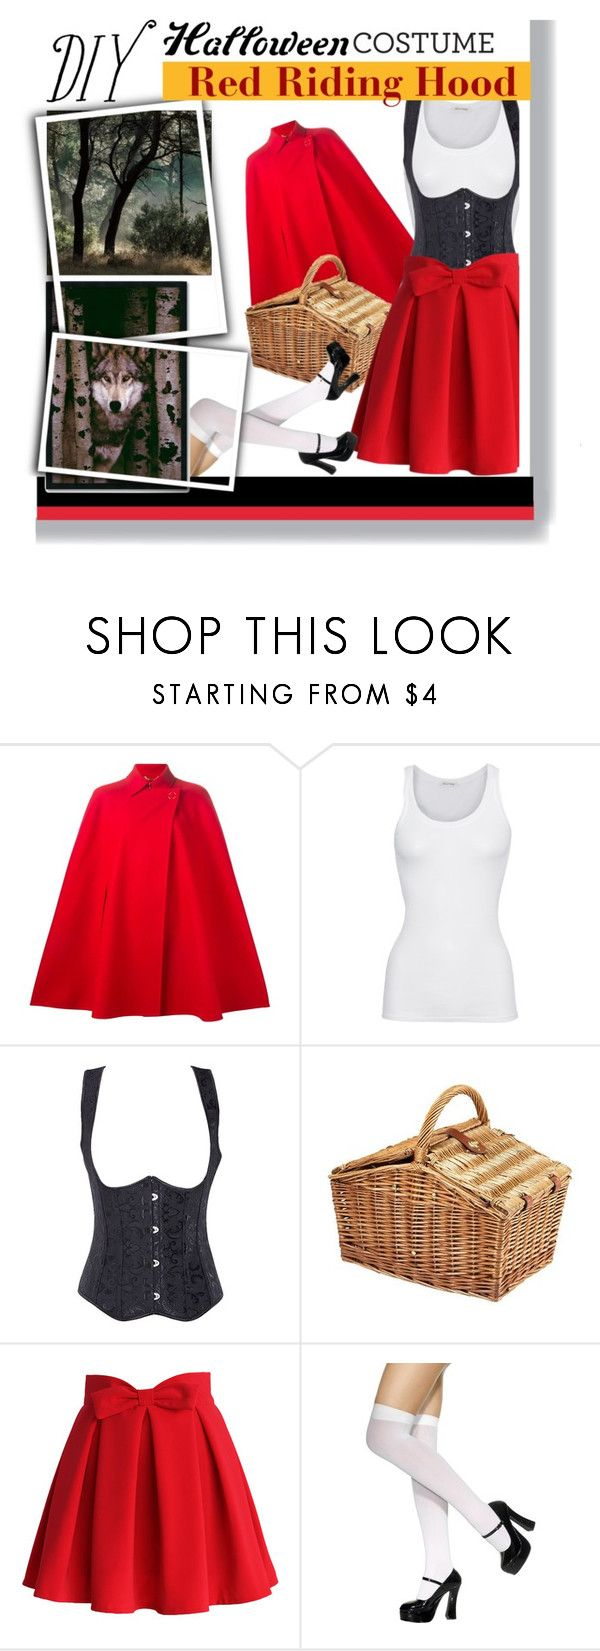 """DIY Halloween Costume: Red Riding Hood"" by rachelsantos ❤ liked on Polyvore featuring Versace, American Vintage, Picnic Time, Chicwish and Amanti Art"